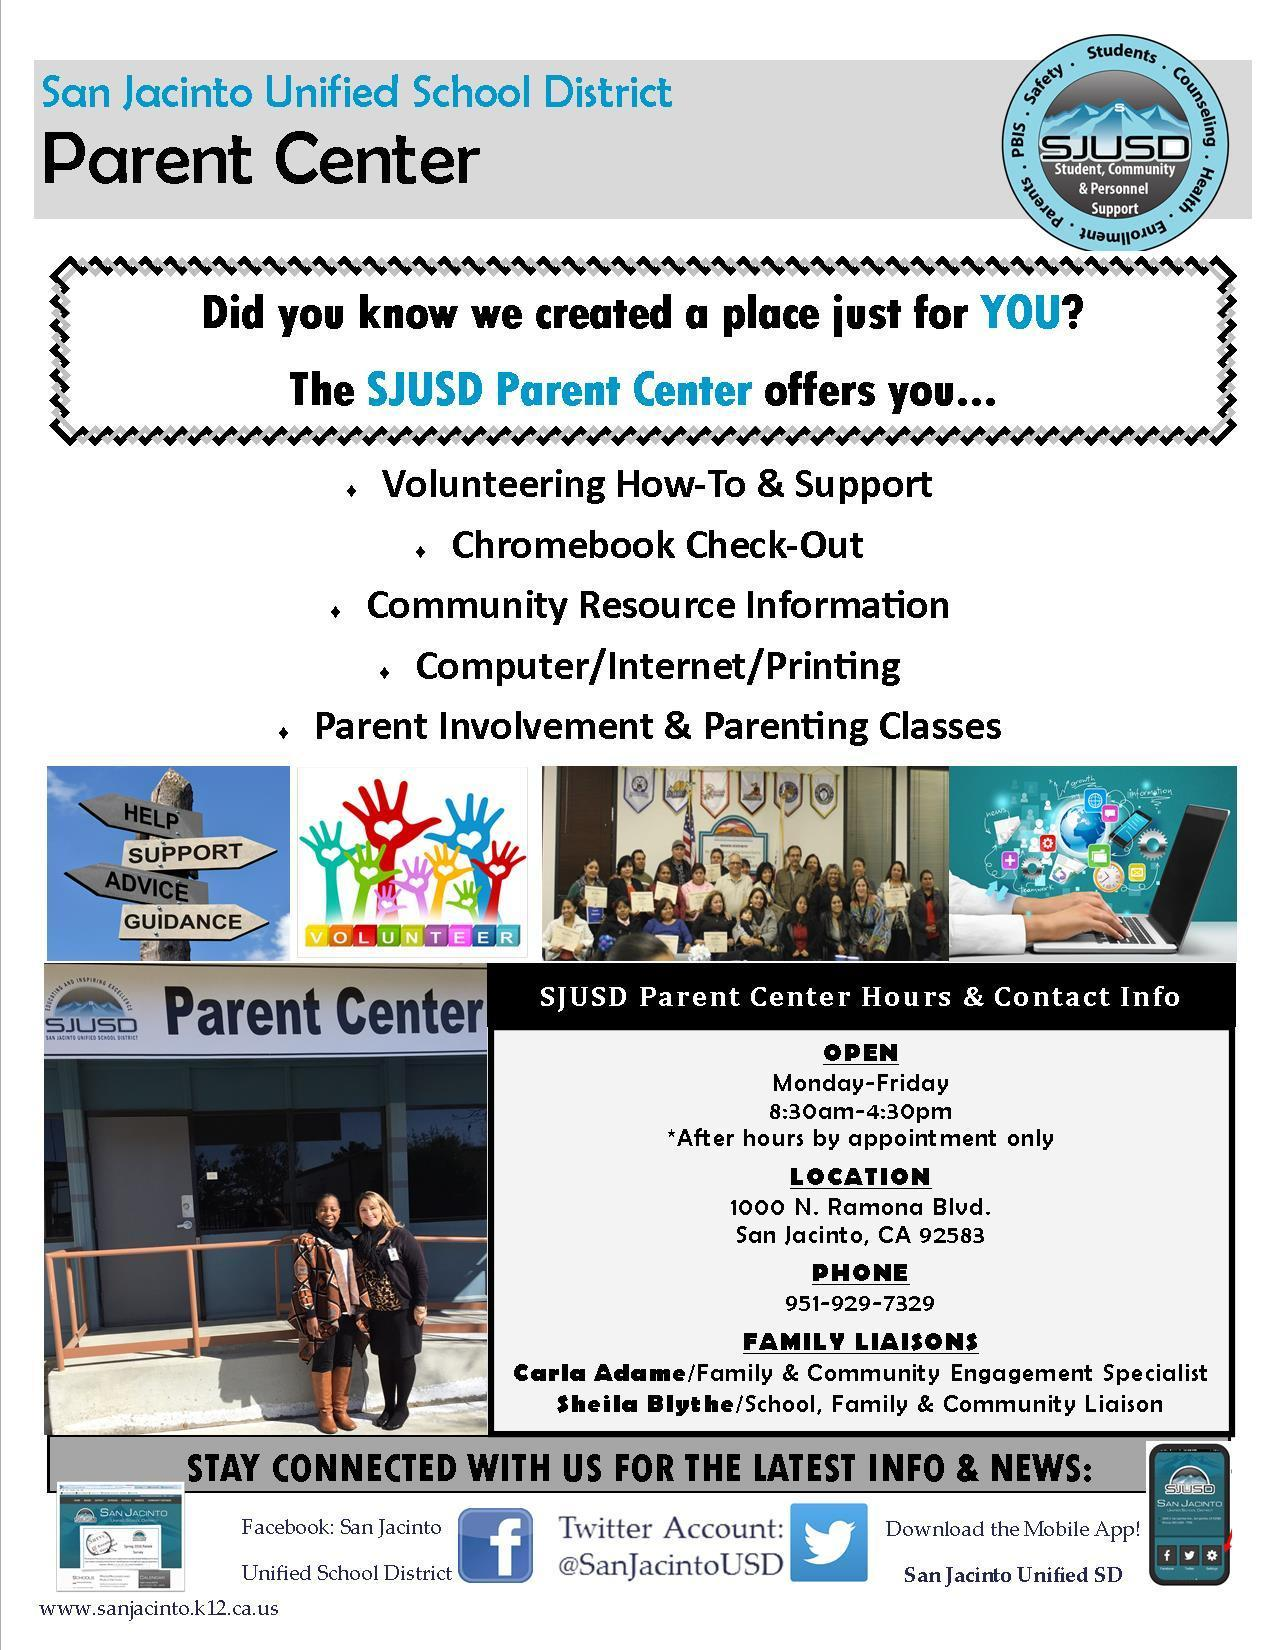 SJUSD Parent Center